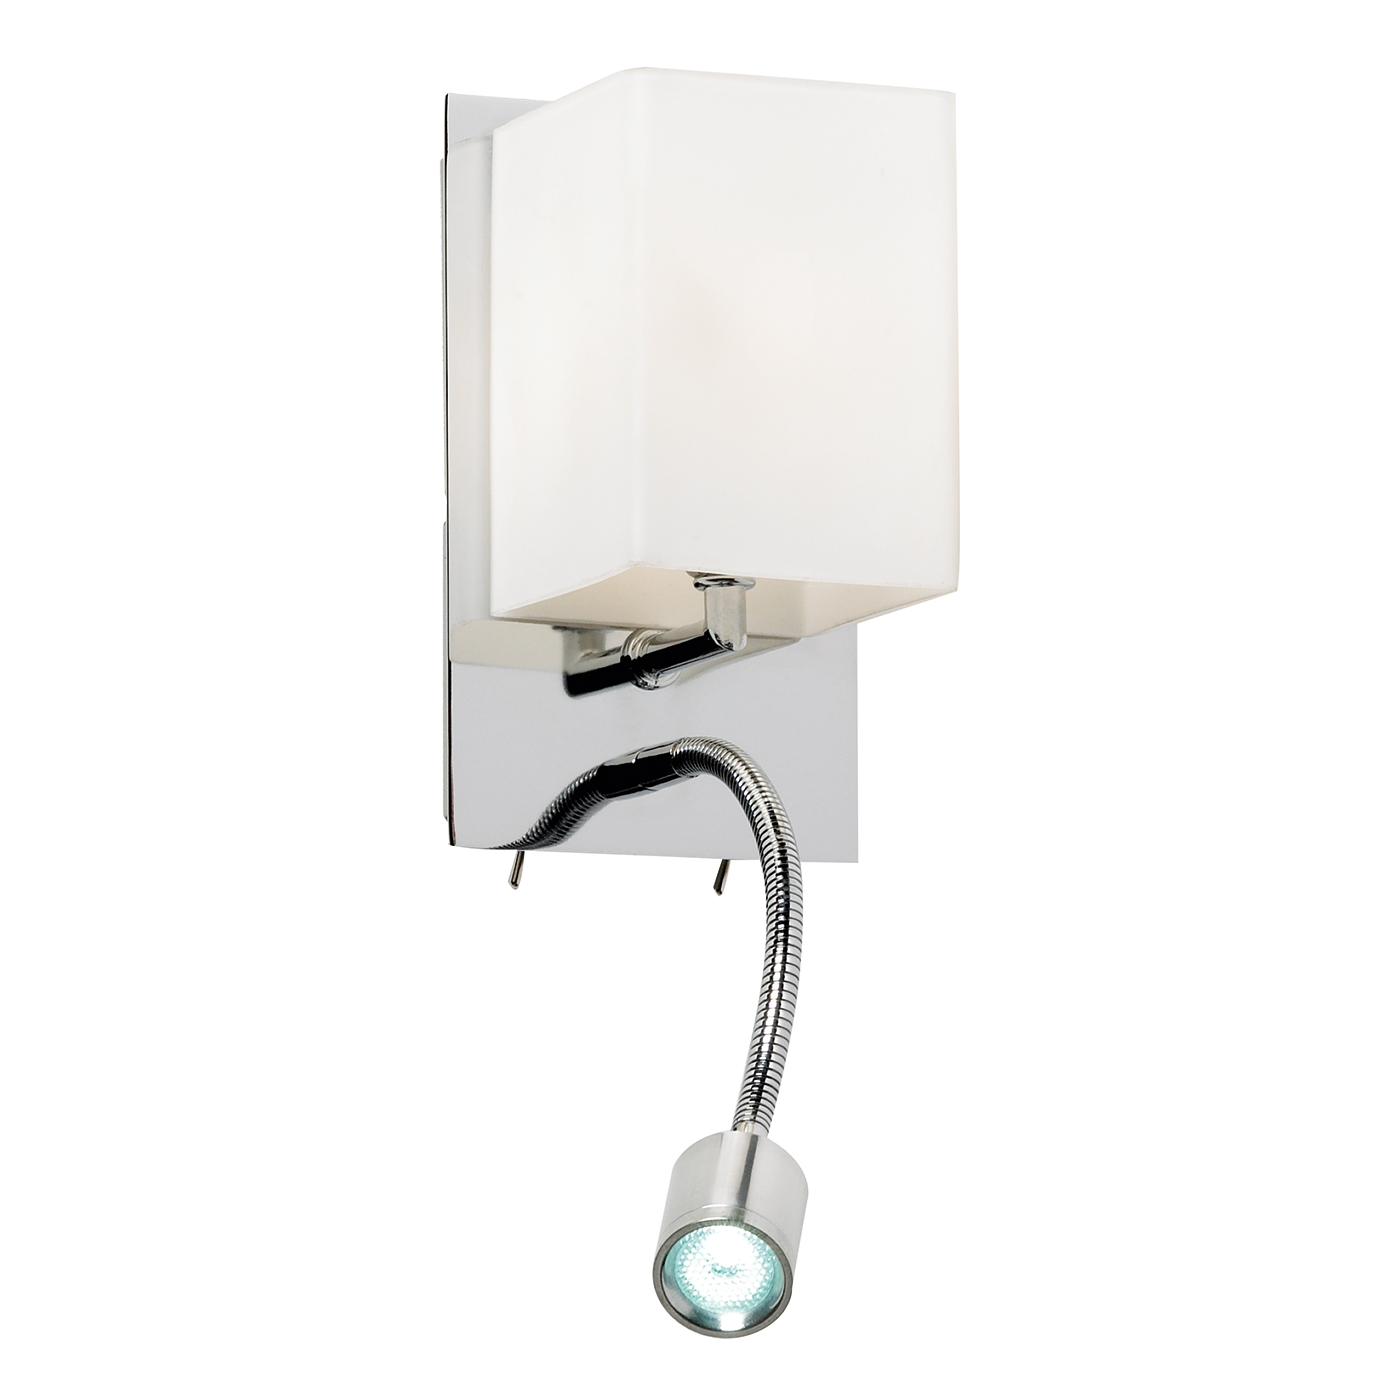 Endon Cava 1lt wall reading light 33W & 3W Chrome effect plate & opal glass Thumbnail 1